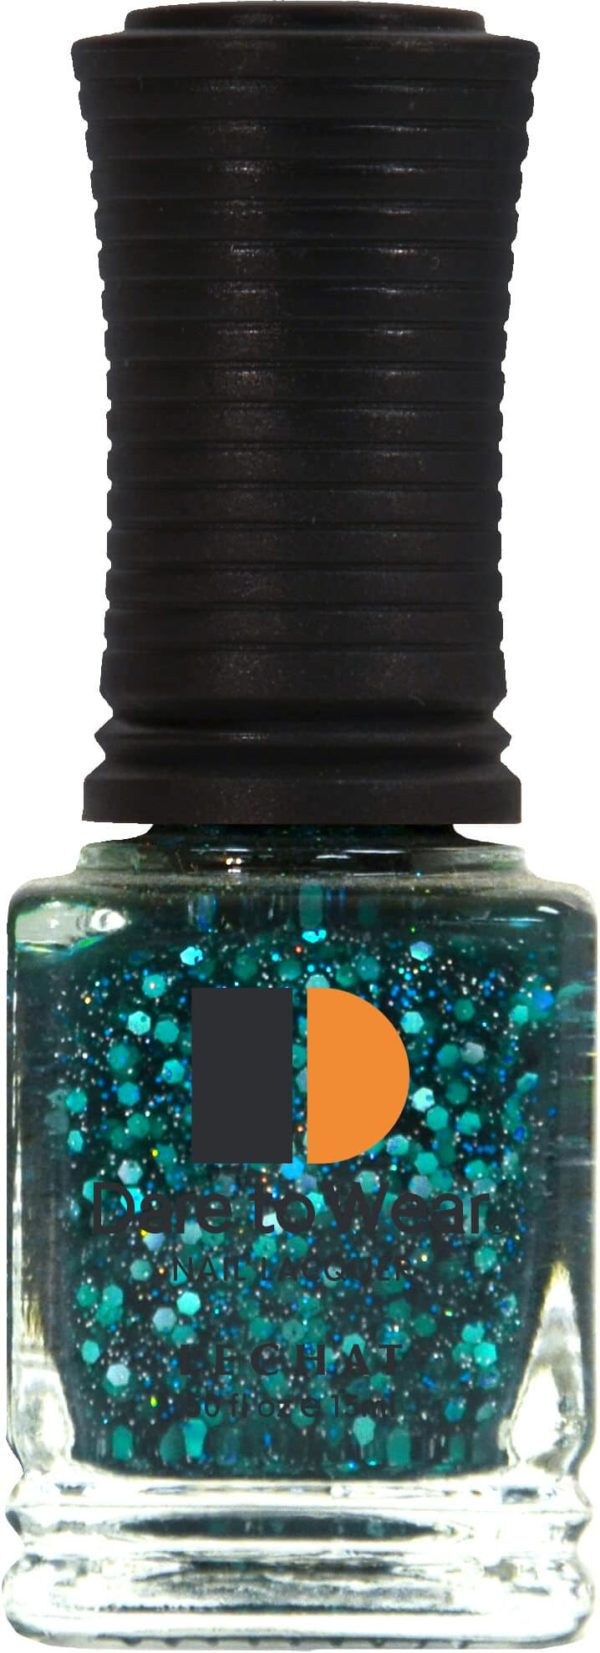 half fluid ounce bottle of blue with glitter Dare to Wear lacquer.